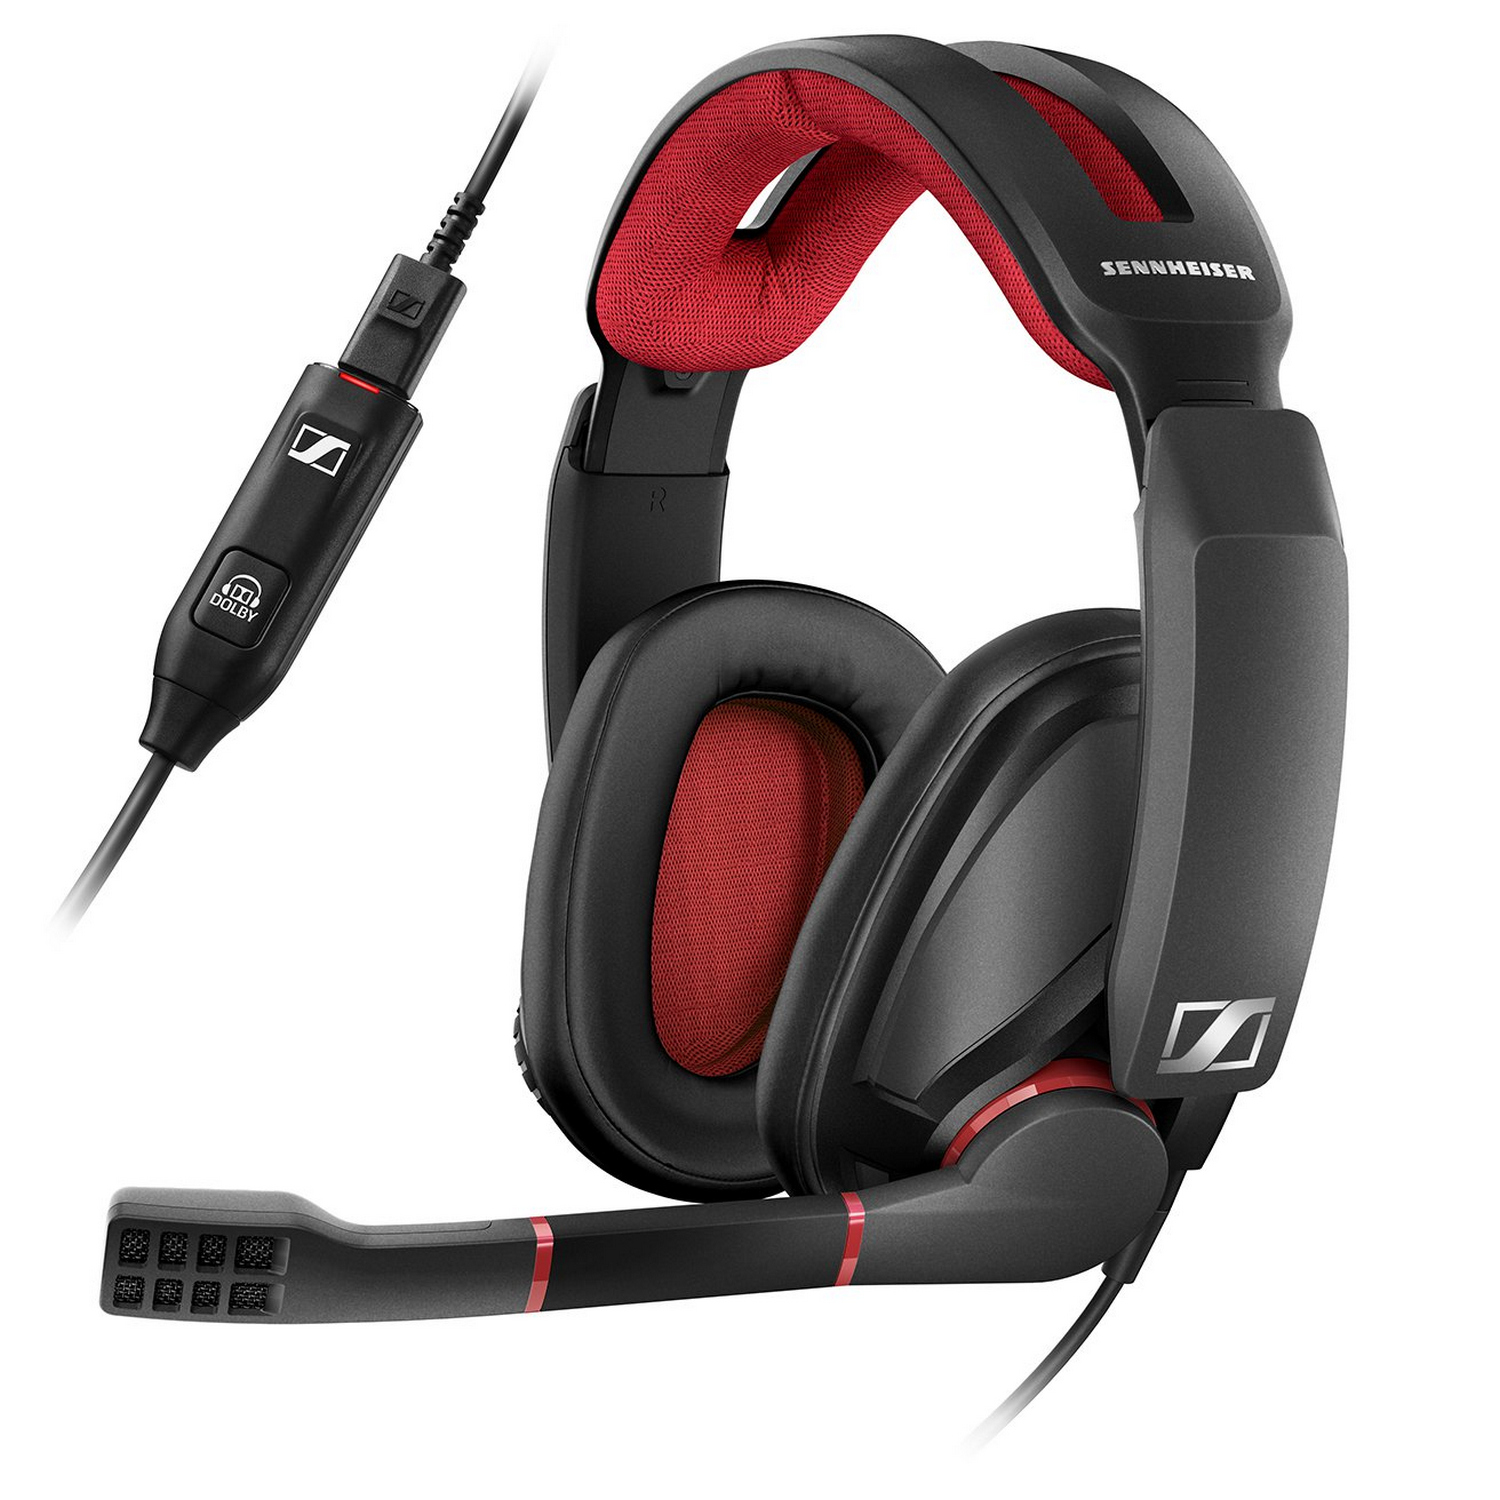 GSP 350 Headset PC Gaming Headset Surround Sound 507081